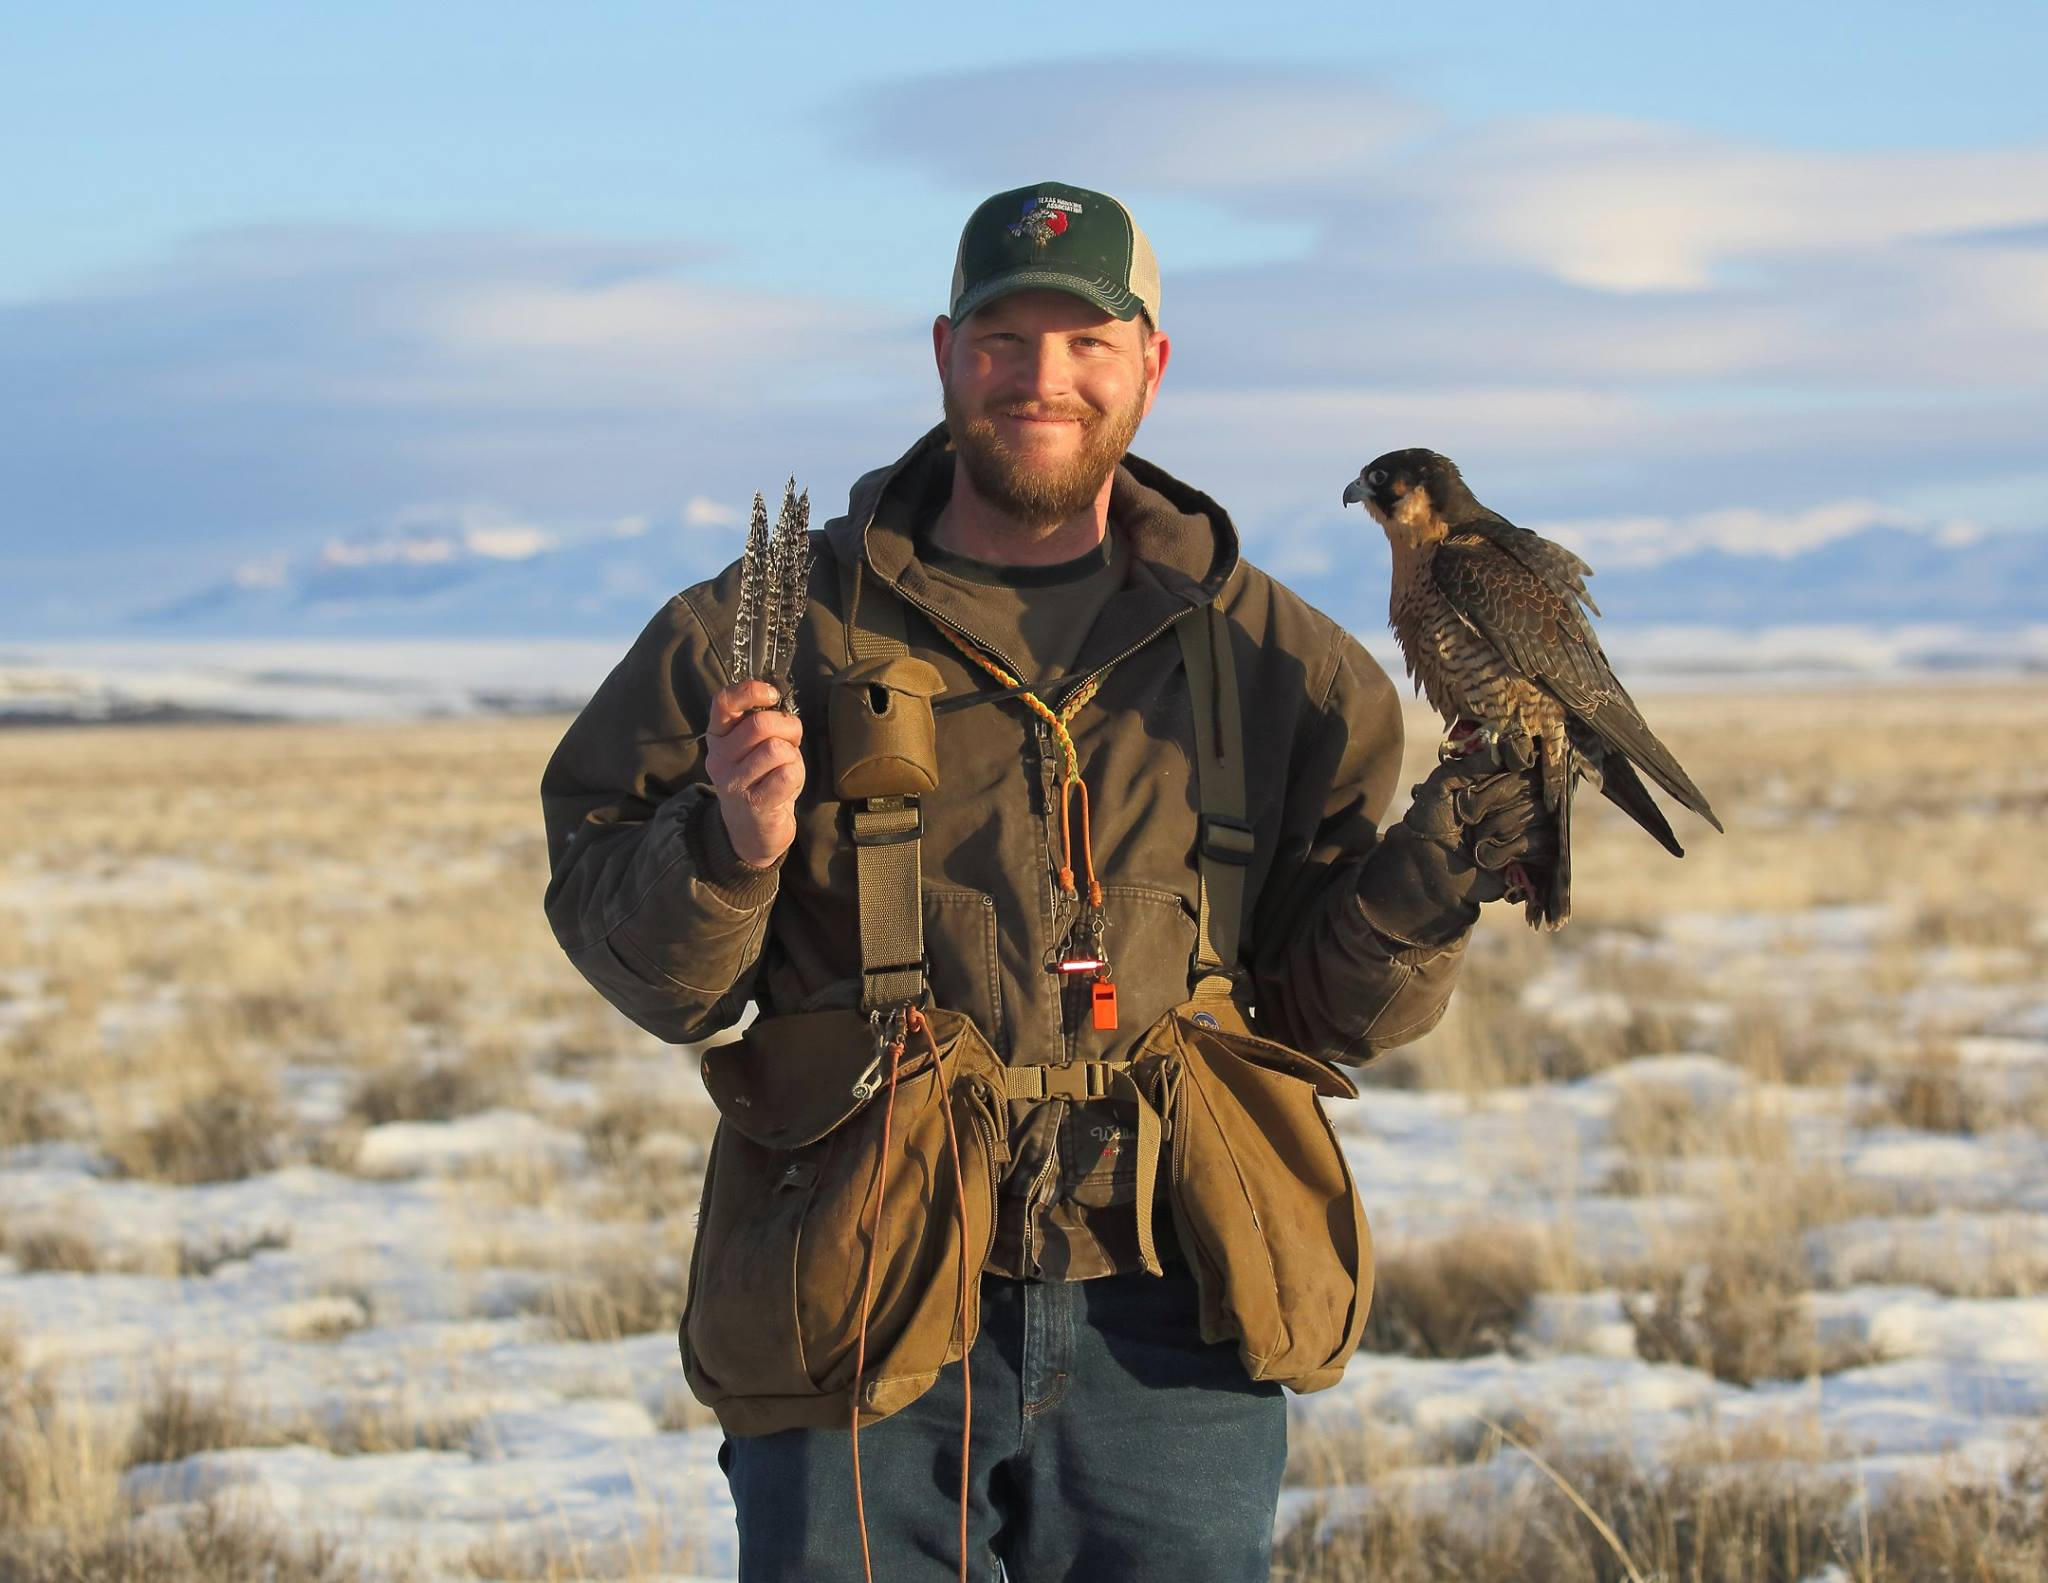 Corey Roelke with passage peregrine and grouse feathers